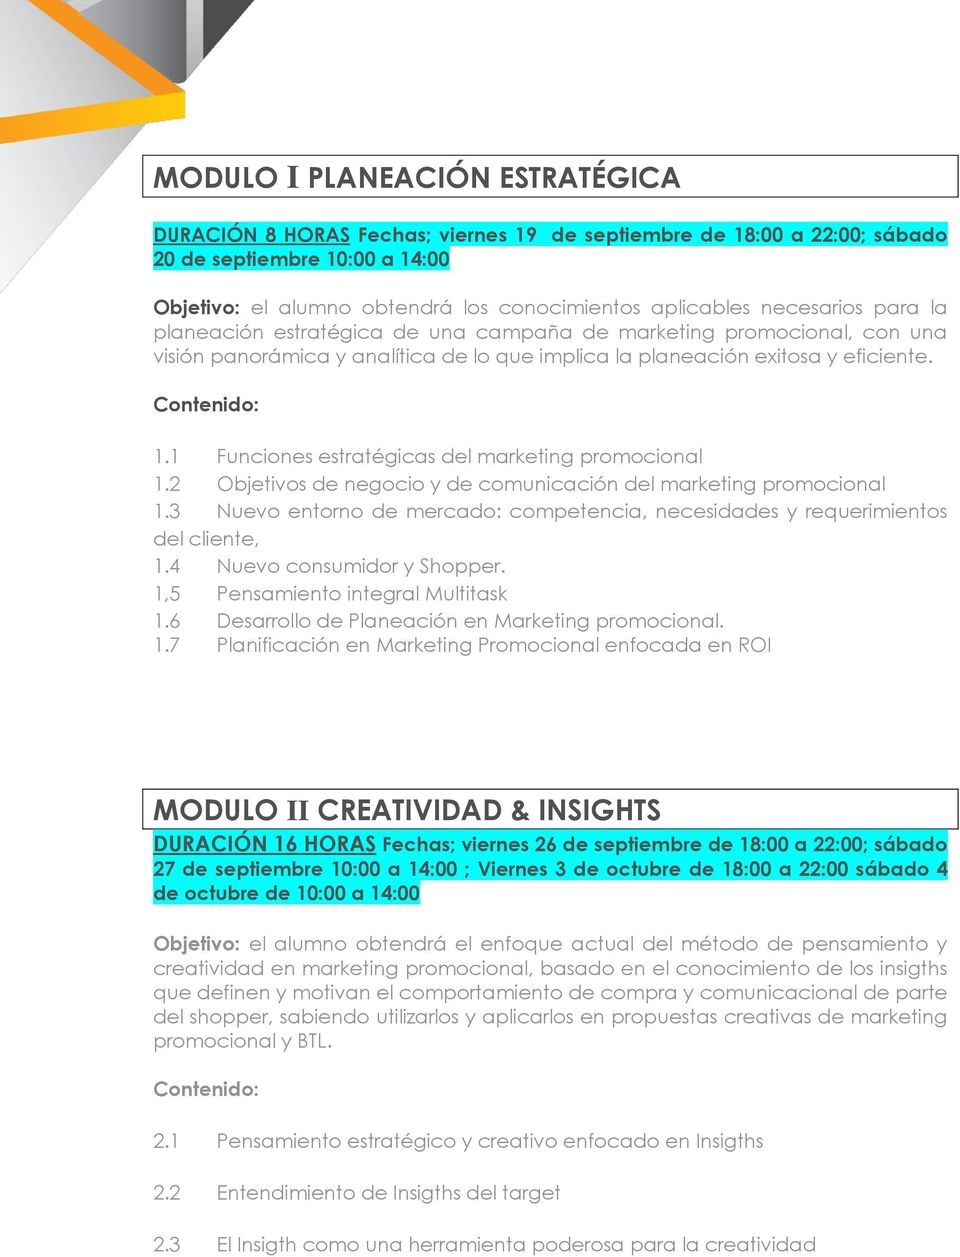 1 Funciones estratégicas del marketing promocional 1.2 Objetivos de negocio y de comunicación del marketing promocional 1.